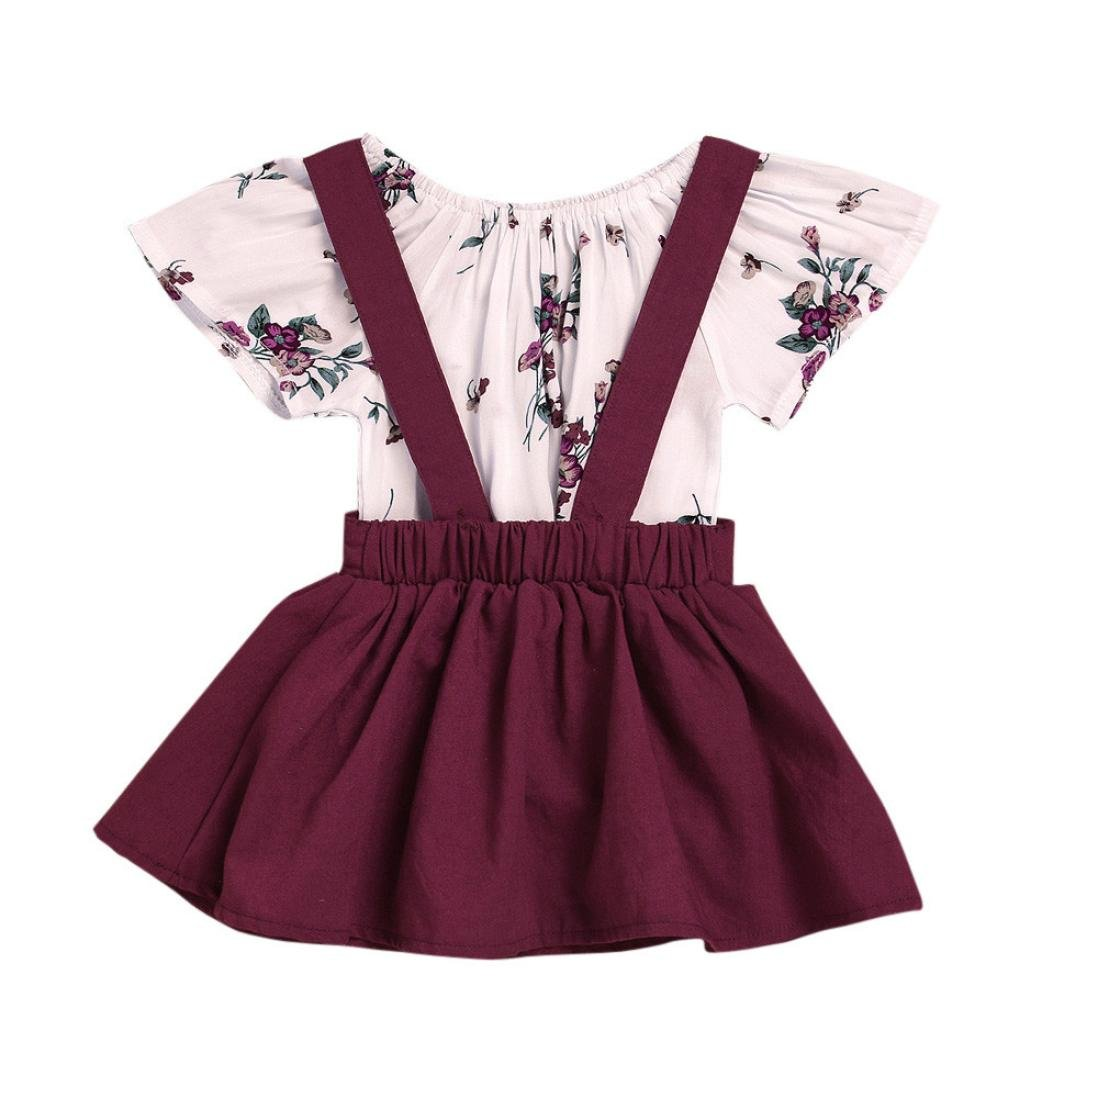 SHOBDW Girls Clothing Sets, Infant Baby Kids Lovely Floral Print Short Sleeve Rompers Jumpsuit + Strap Summer Skirt Outfits Gifts SHOBDW-05